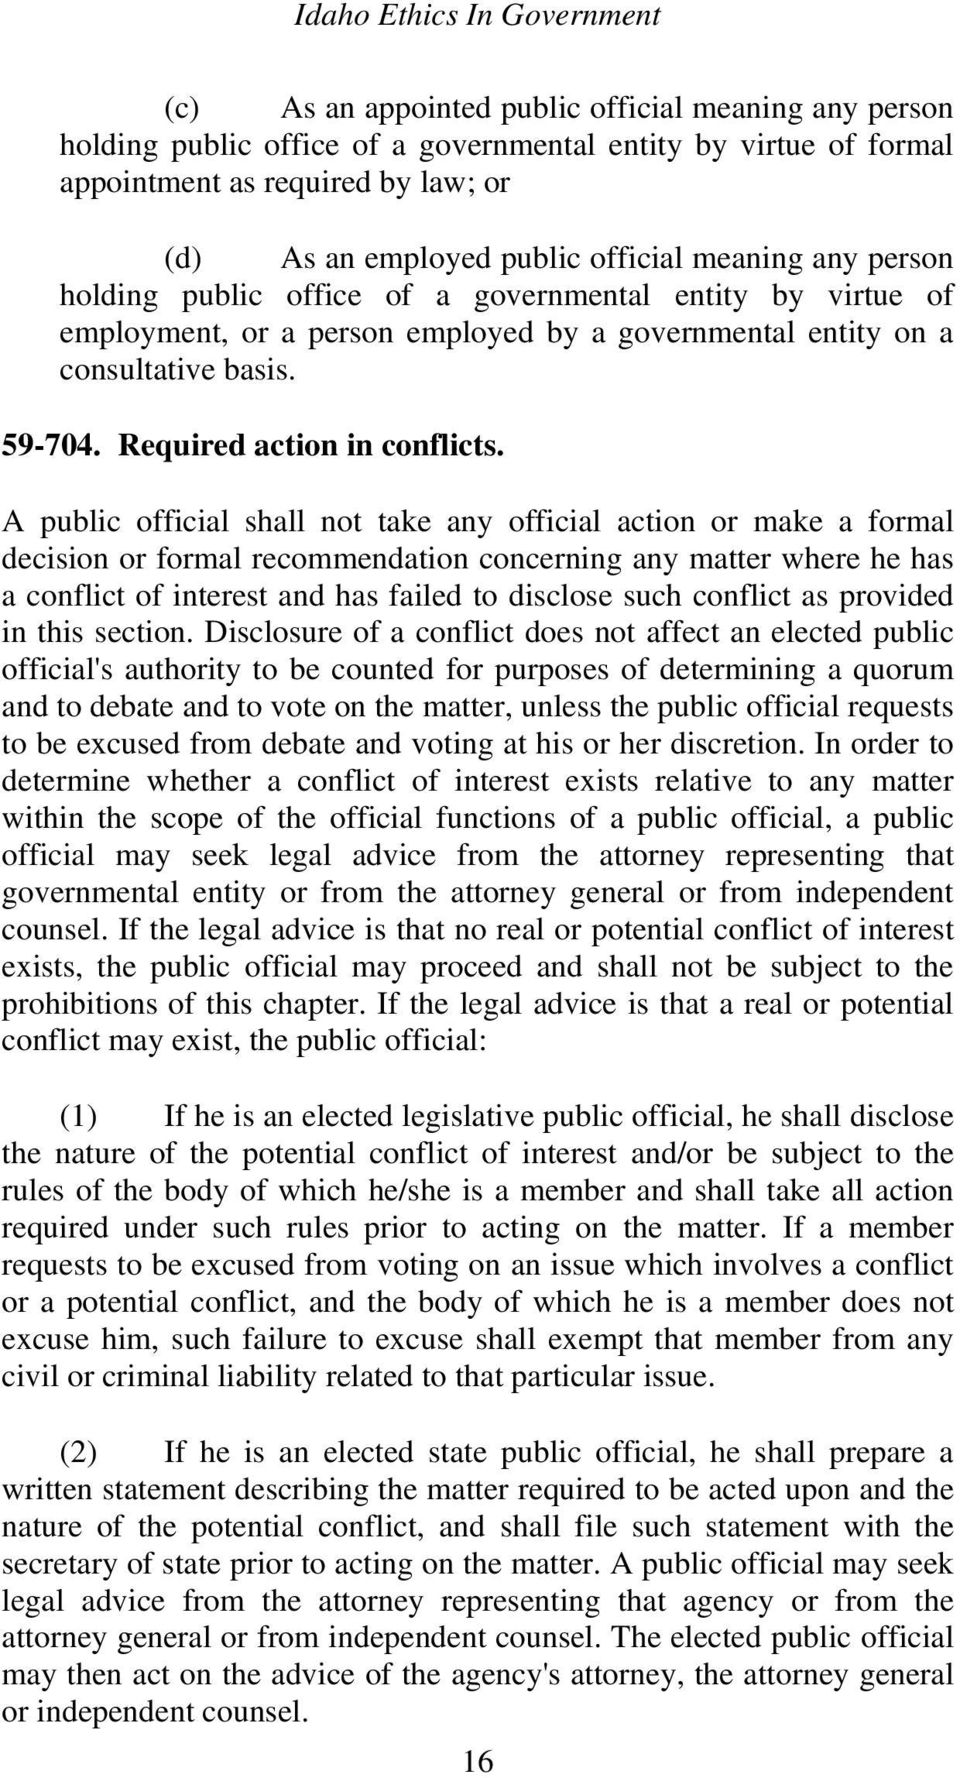 A public official shall not take any official action or make a formal decision or formal recommendation concerning any matter where he has a conflict of interest and has failed to disclose such